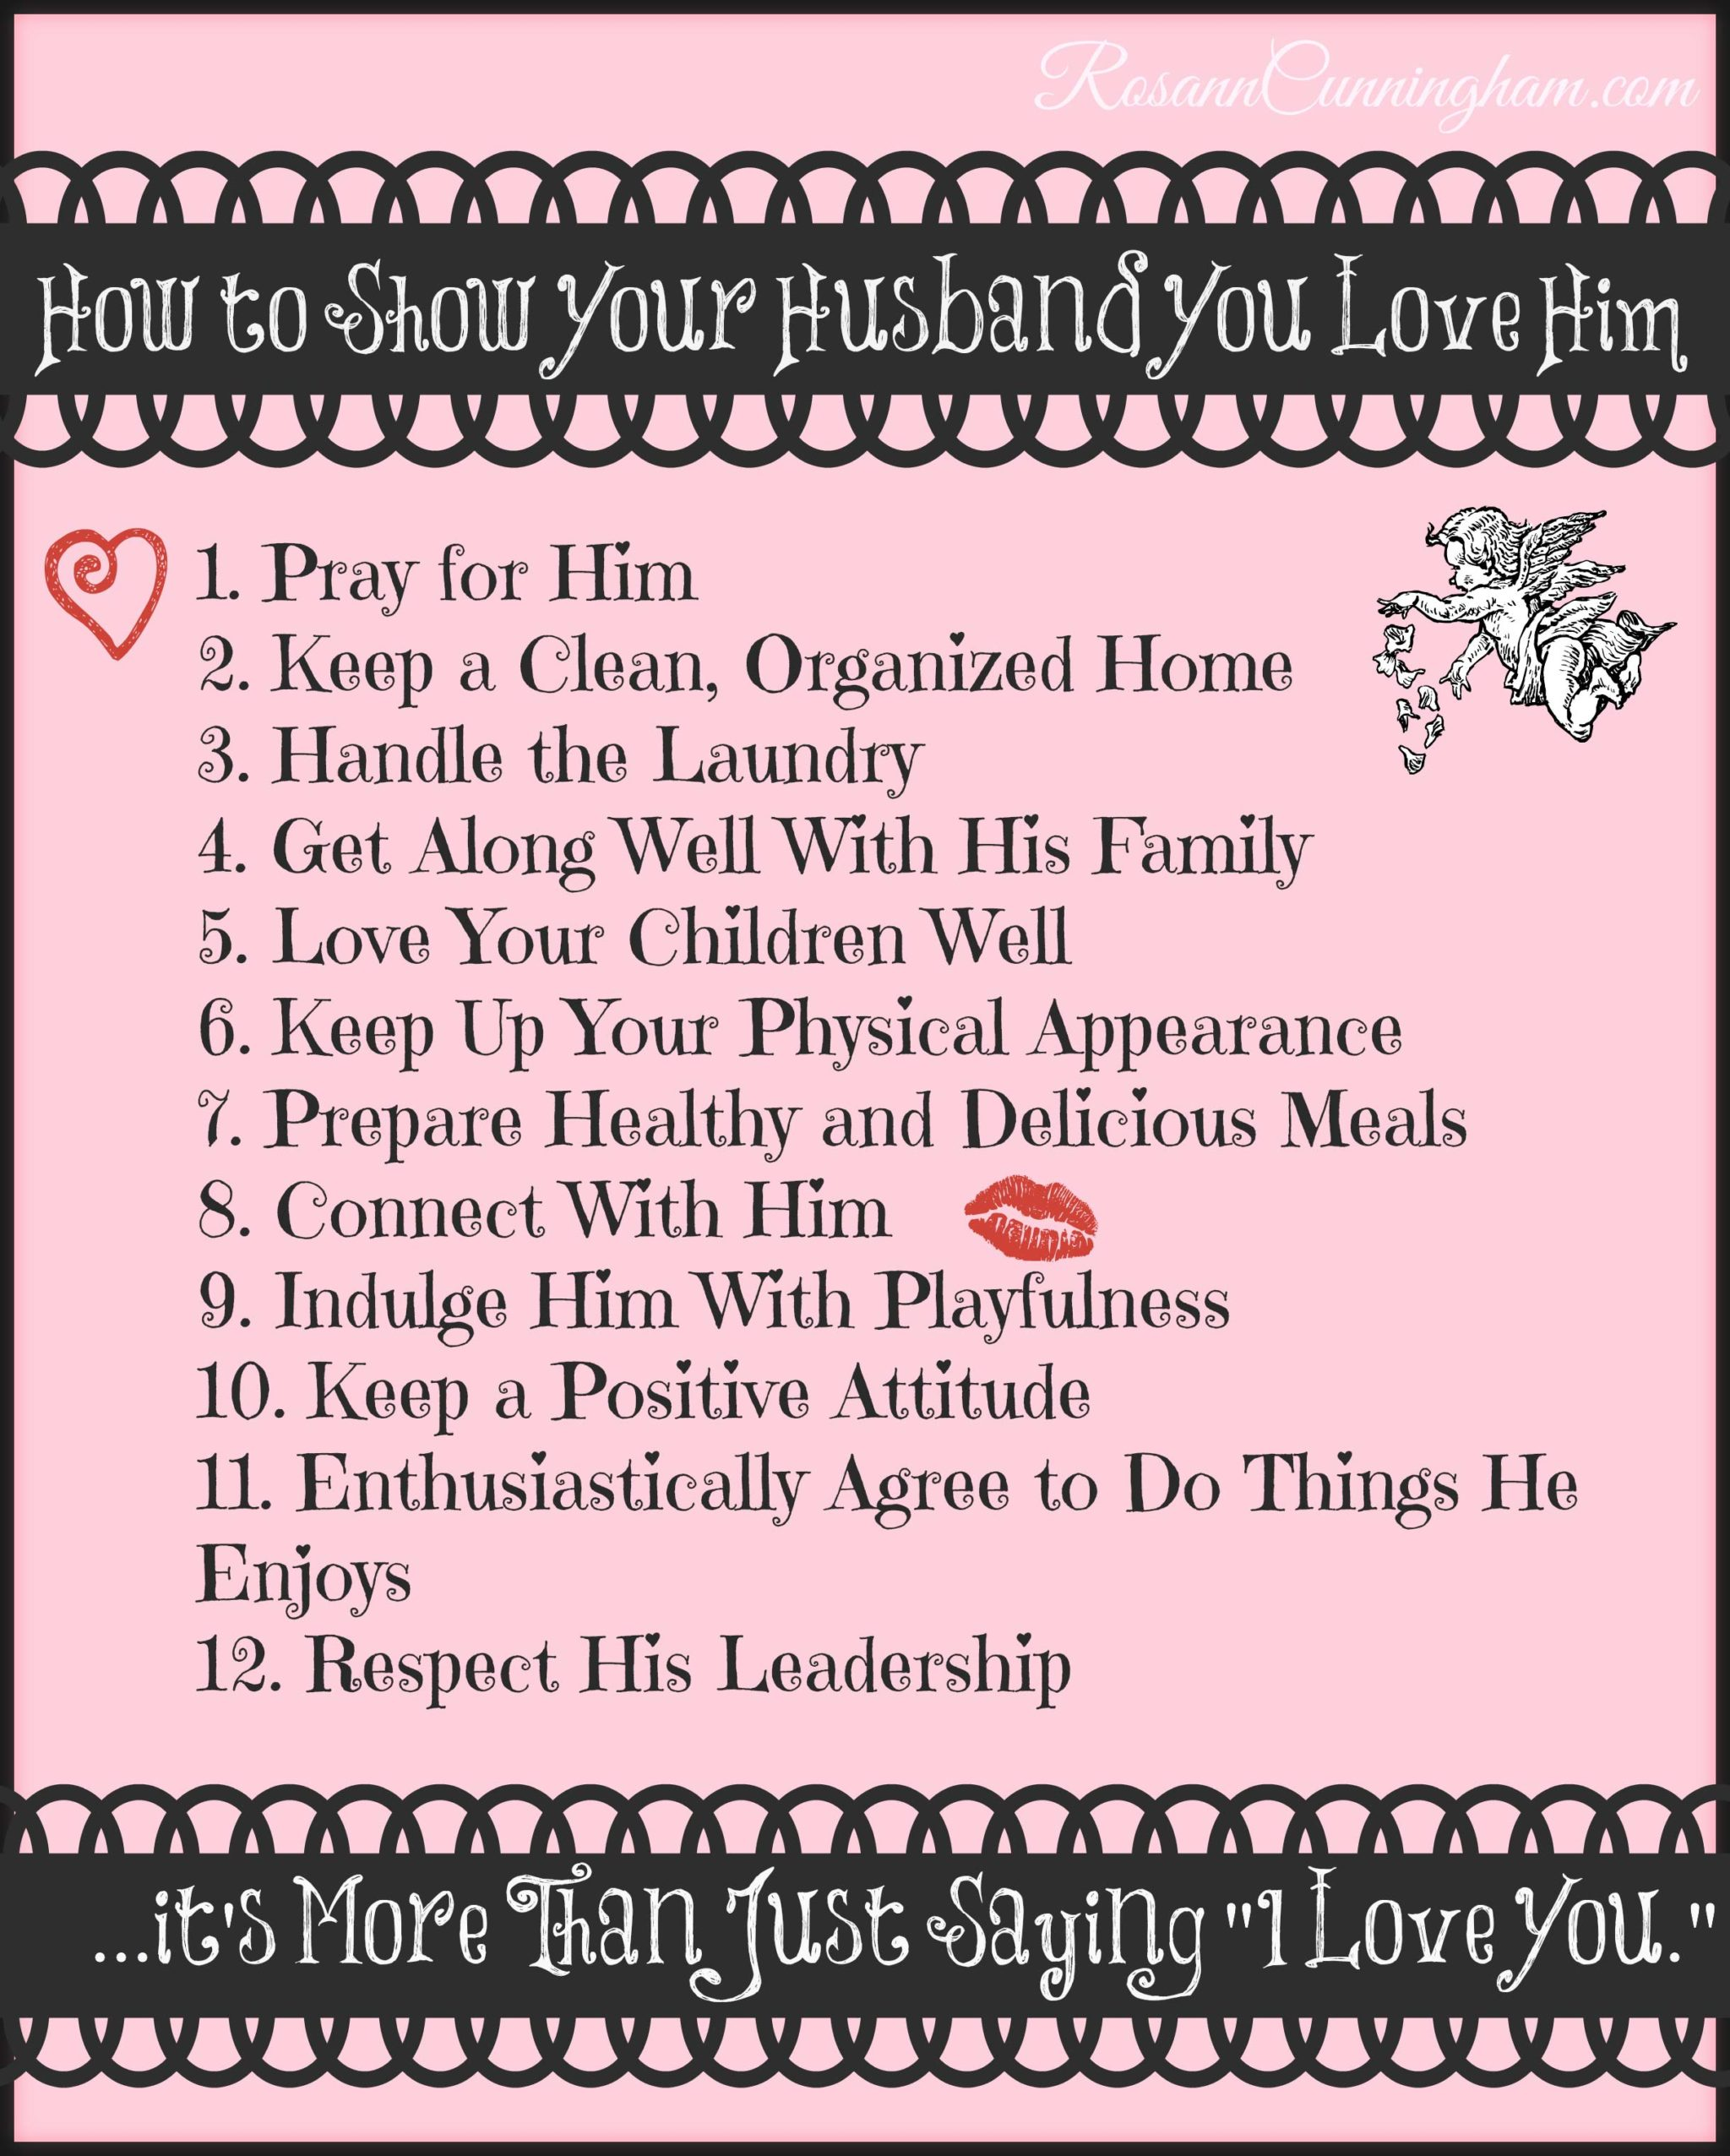 Remind Your Husband You Love Him